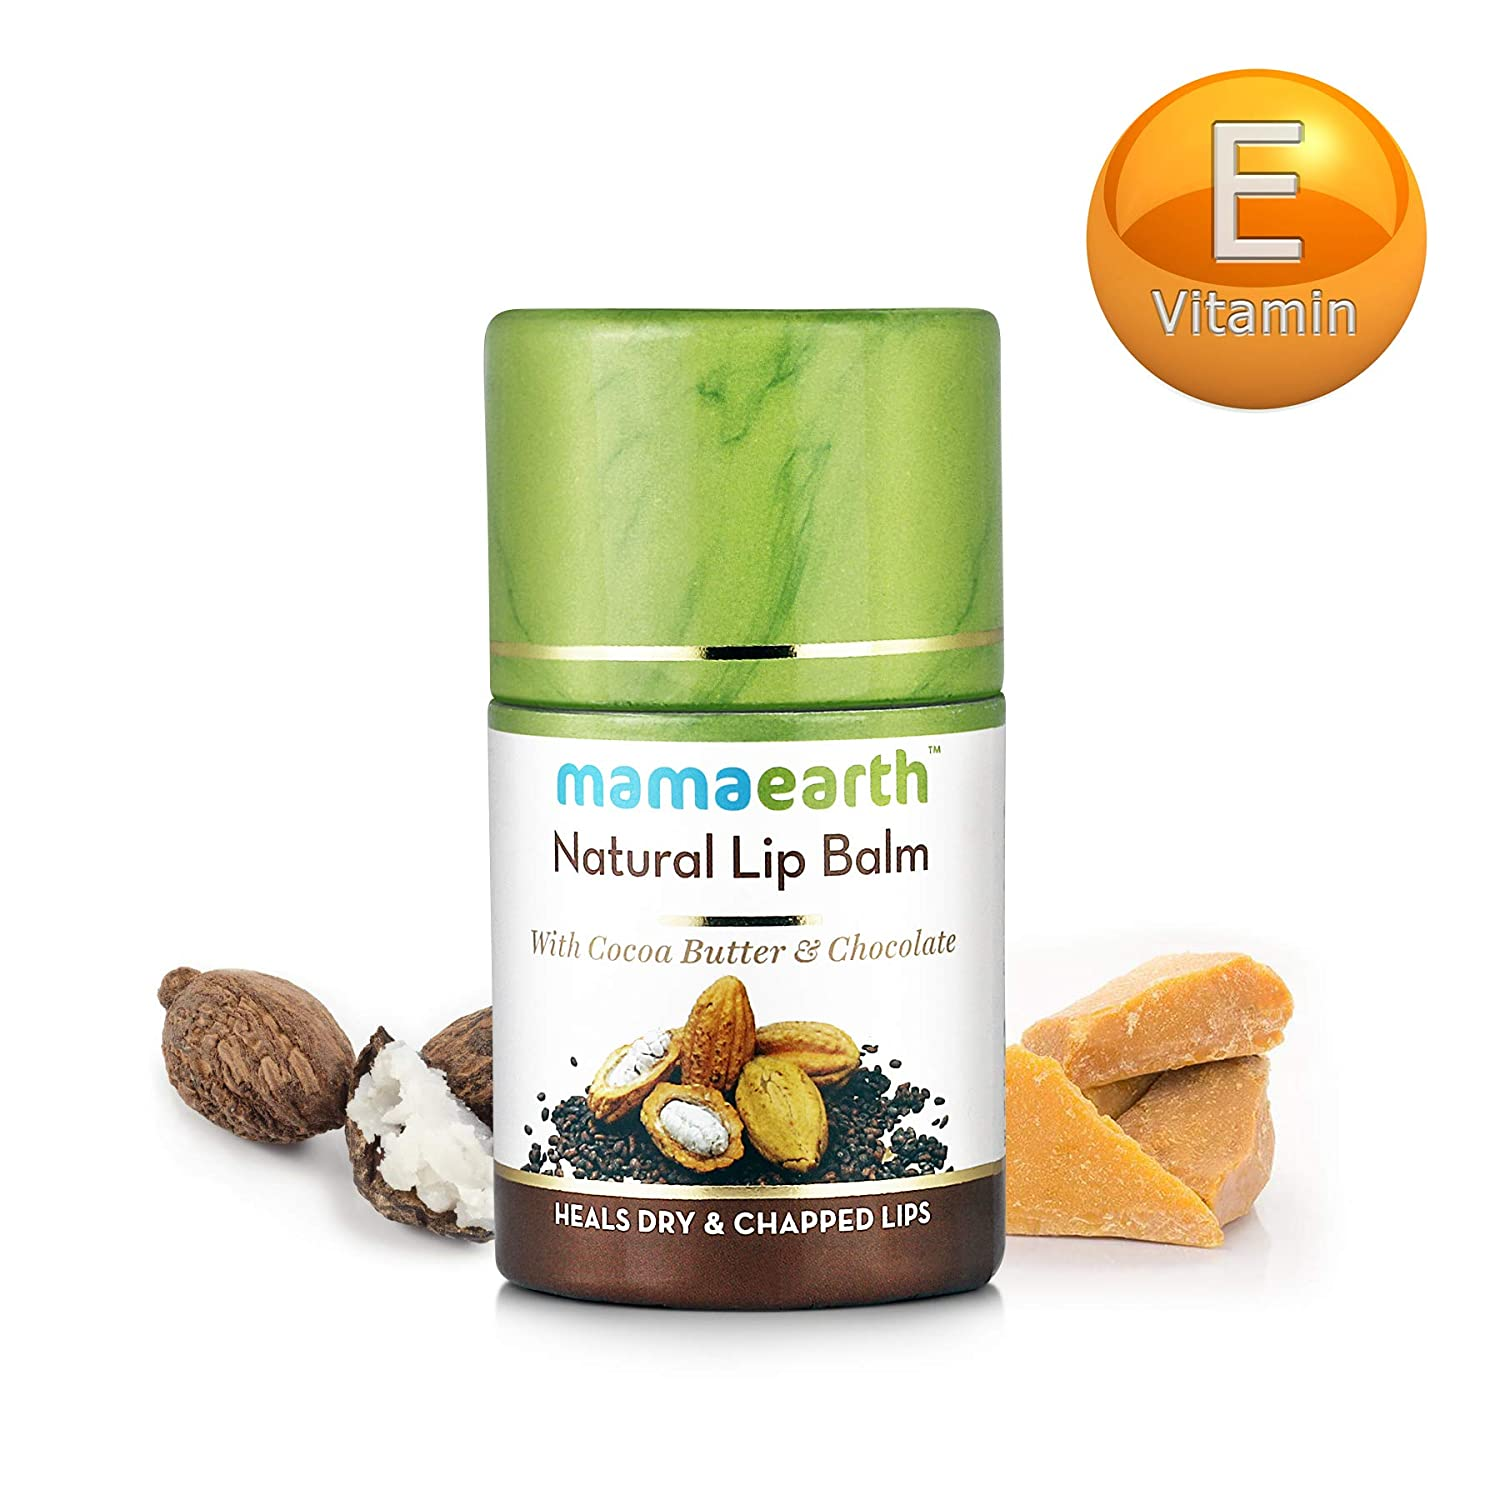 Mamaearth Natural Lip Balm With Cocoa Butter & Chocolate